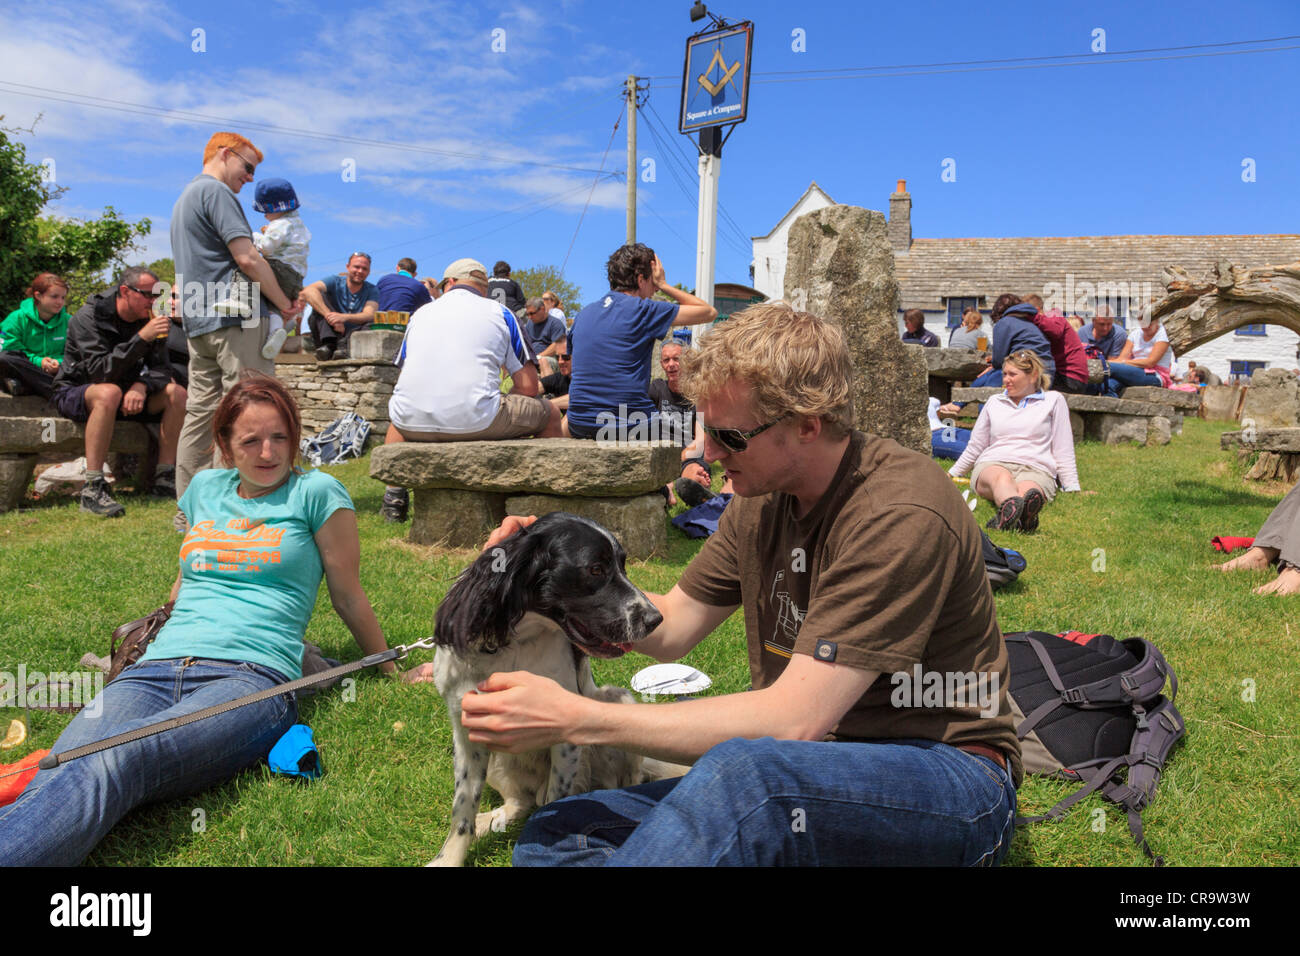 Everyday scene with people sitting in busy beer garden of Square and Compass country village pub lifestyle in summer - Stock Image